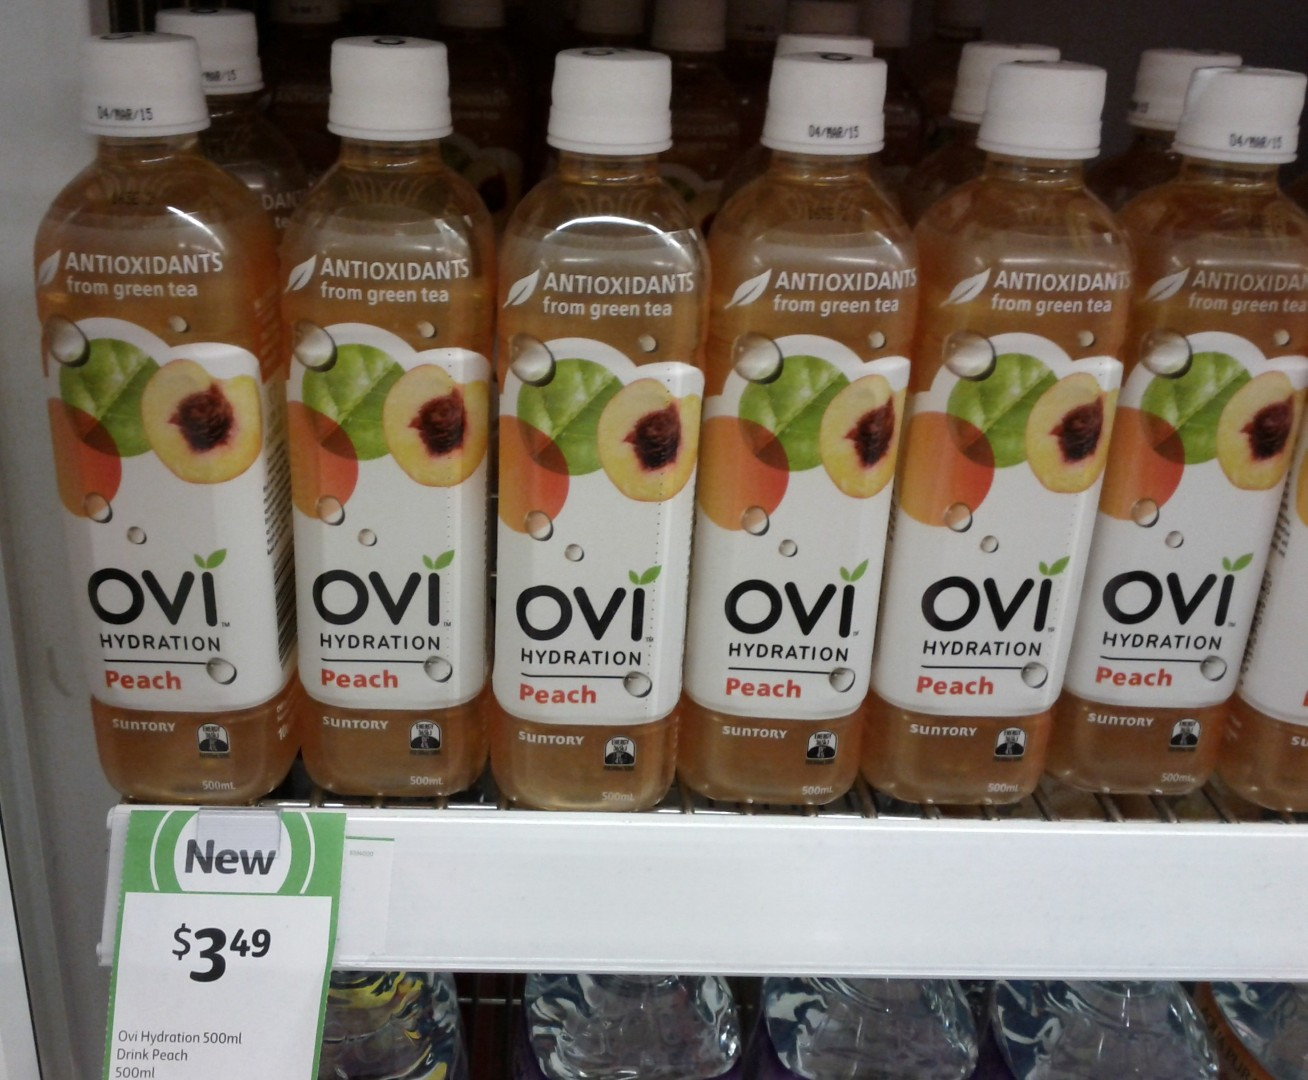 Ovi Hydration 500mL Peach